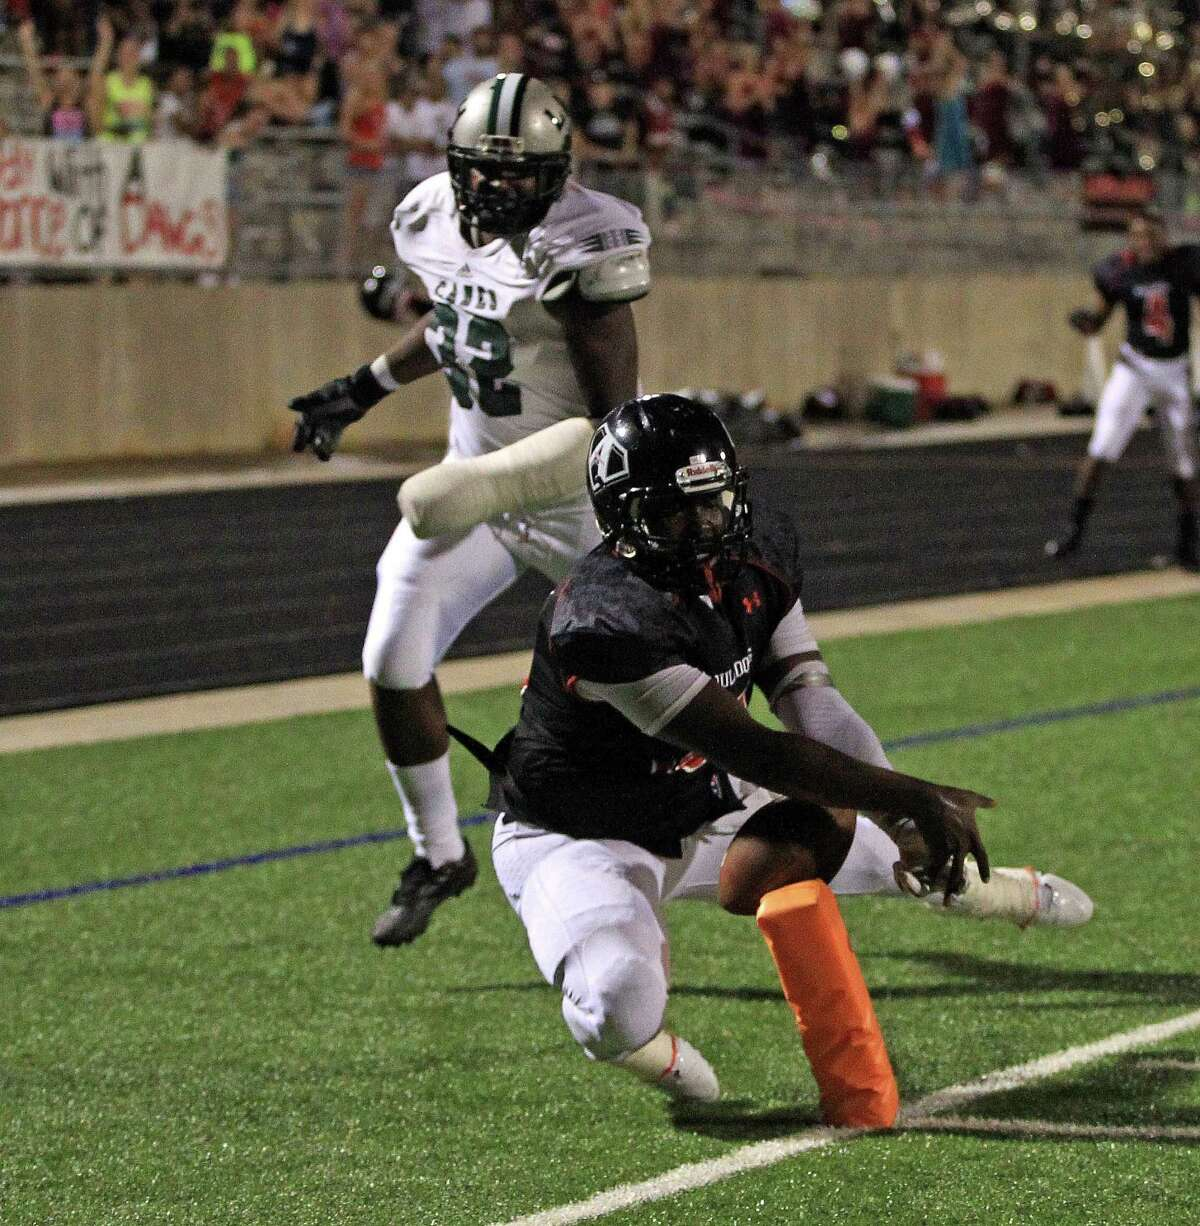 Austin's Seun Aboderin scores a 48-yard touchdown as Hightower's Daiquan Blount looks on during the second half of a high school football game, Saturday, October 5, 2013 at Hall Stadium in Missouri City.